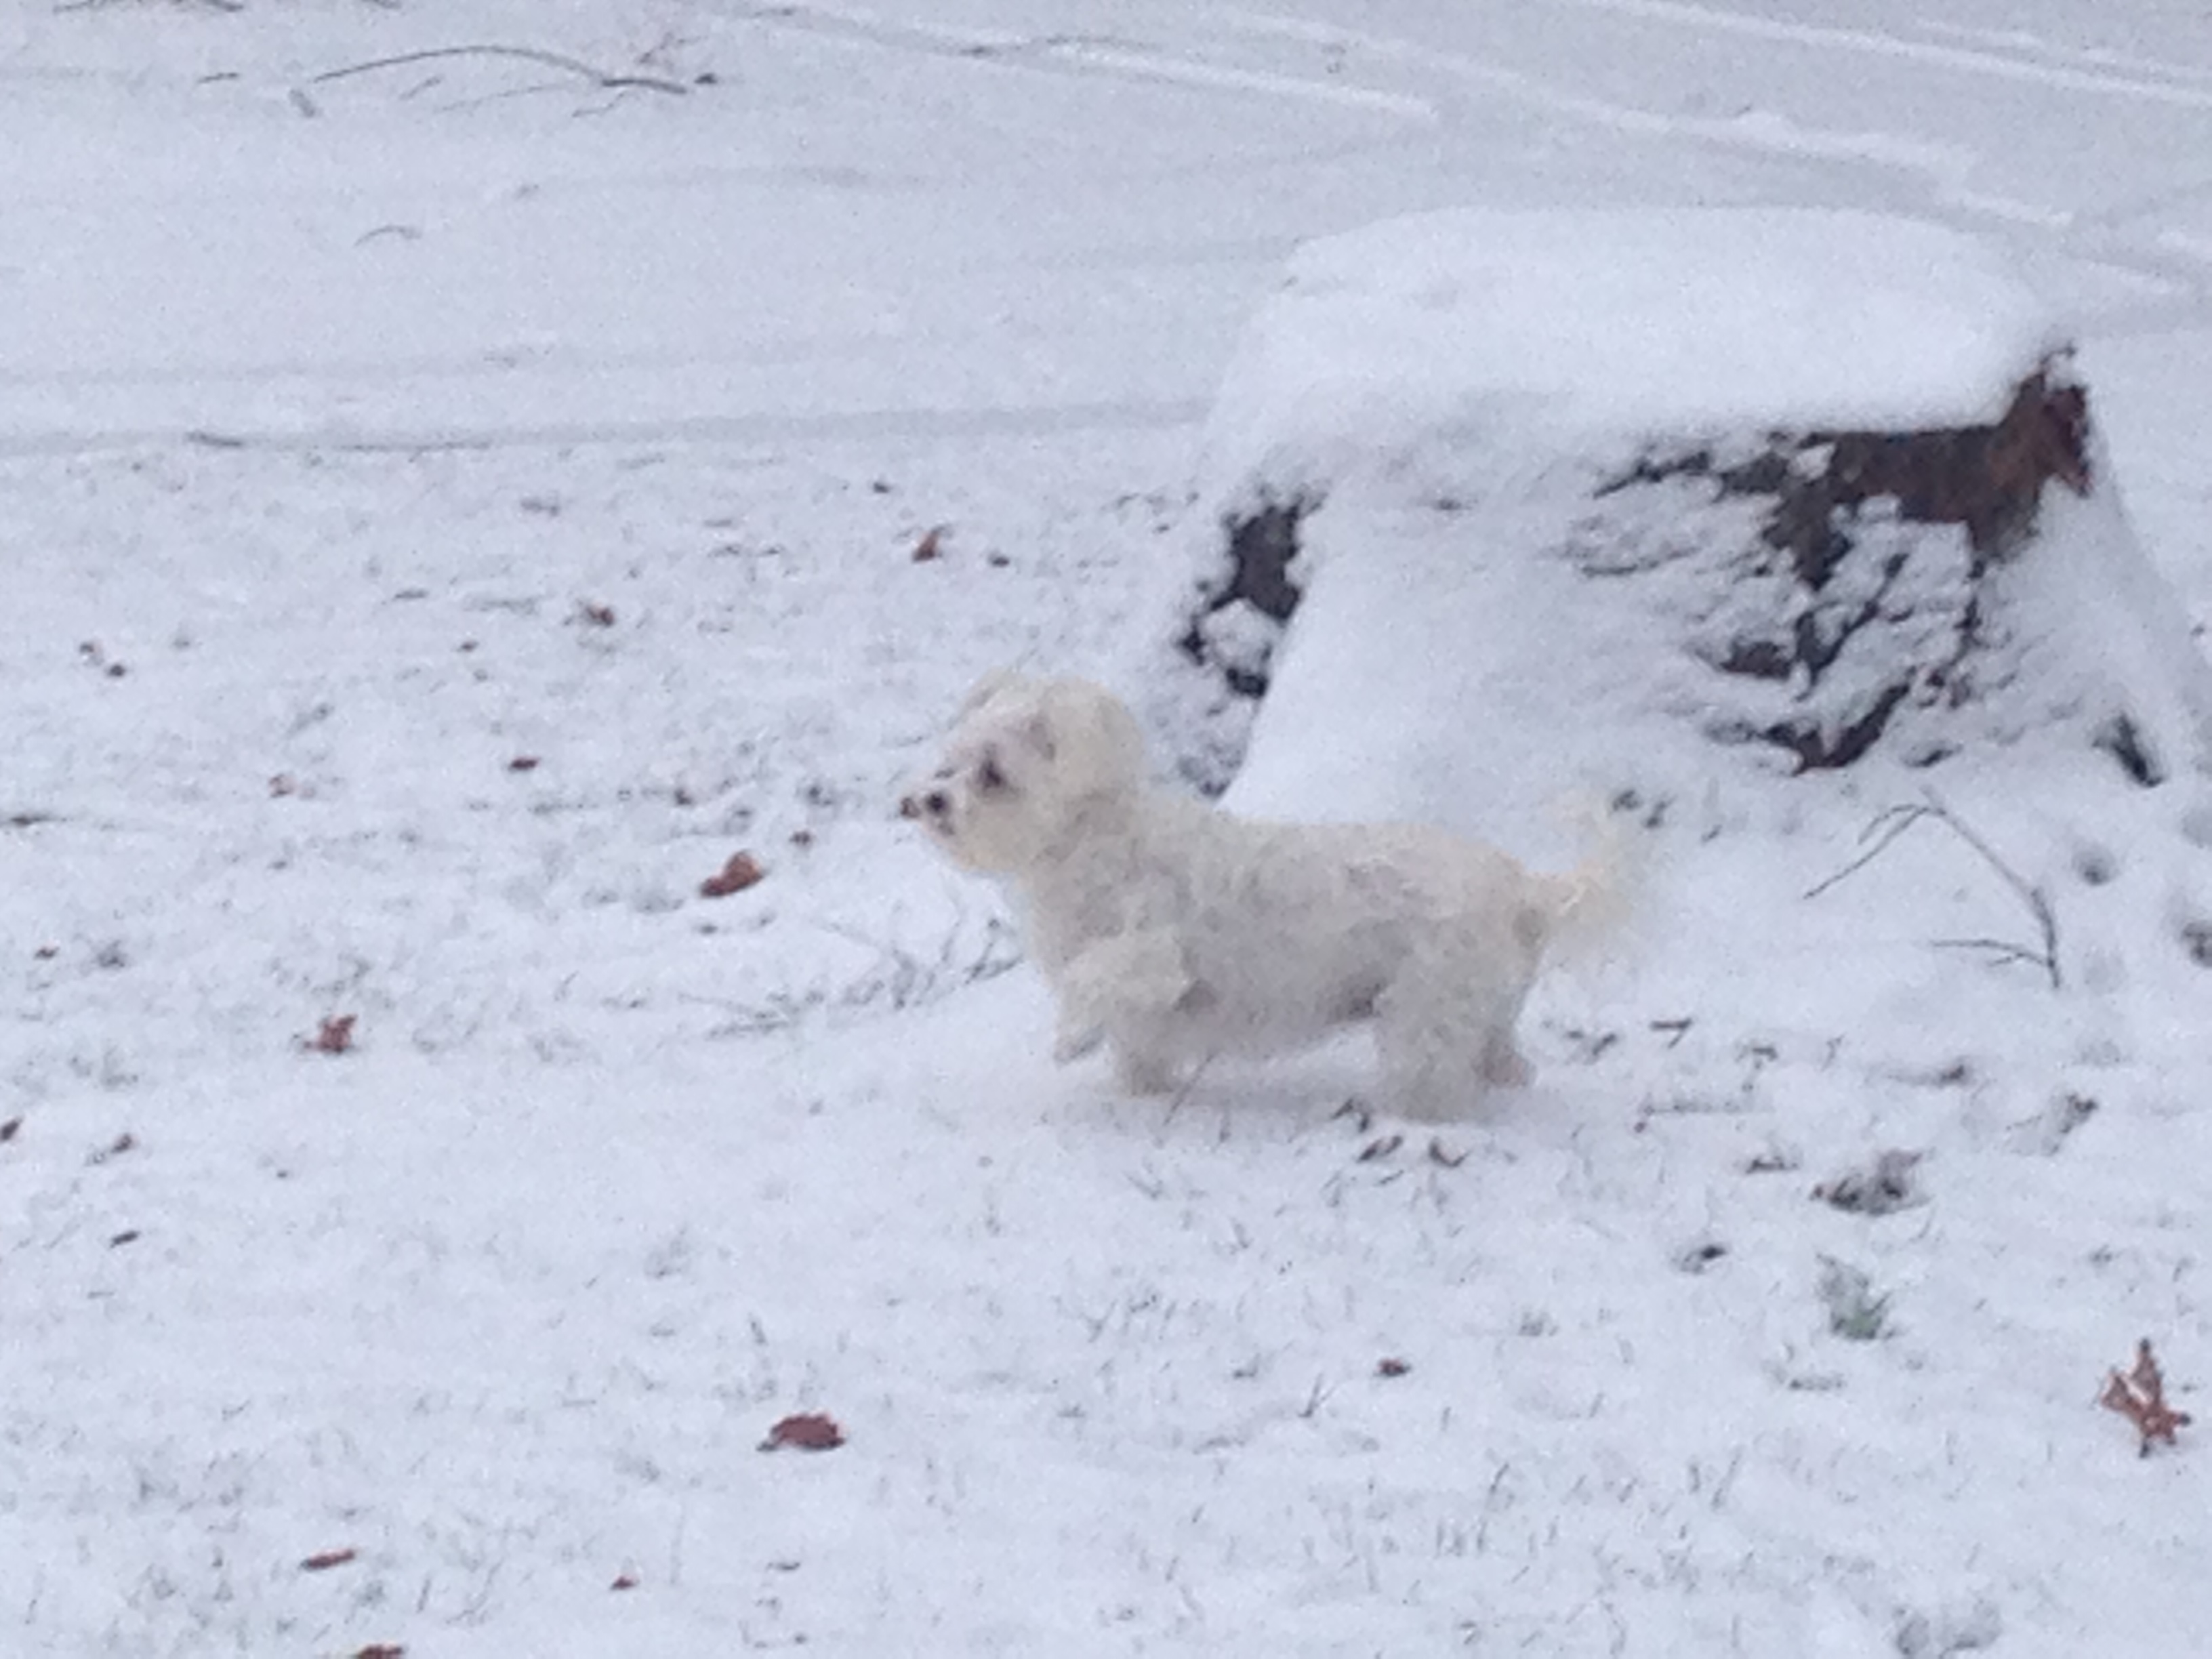 white small dog by stump in the snow